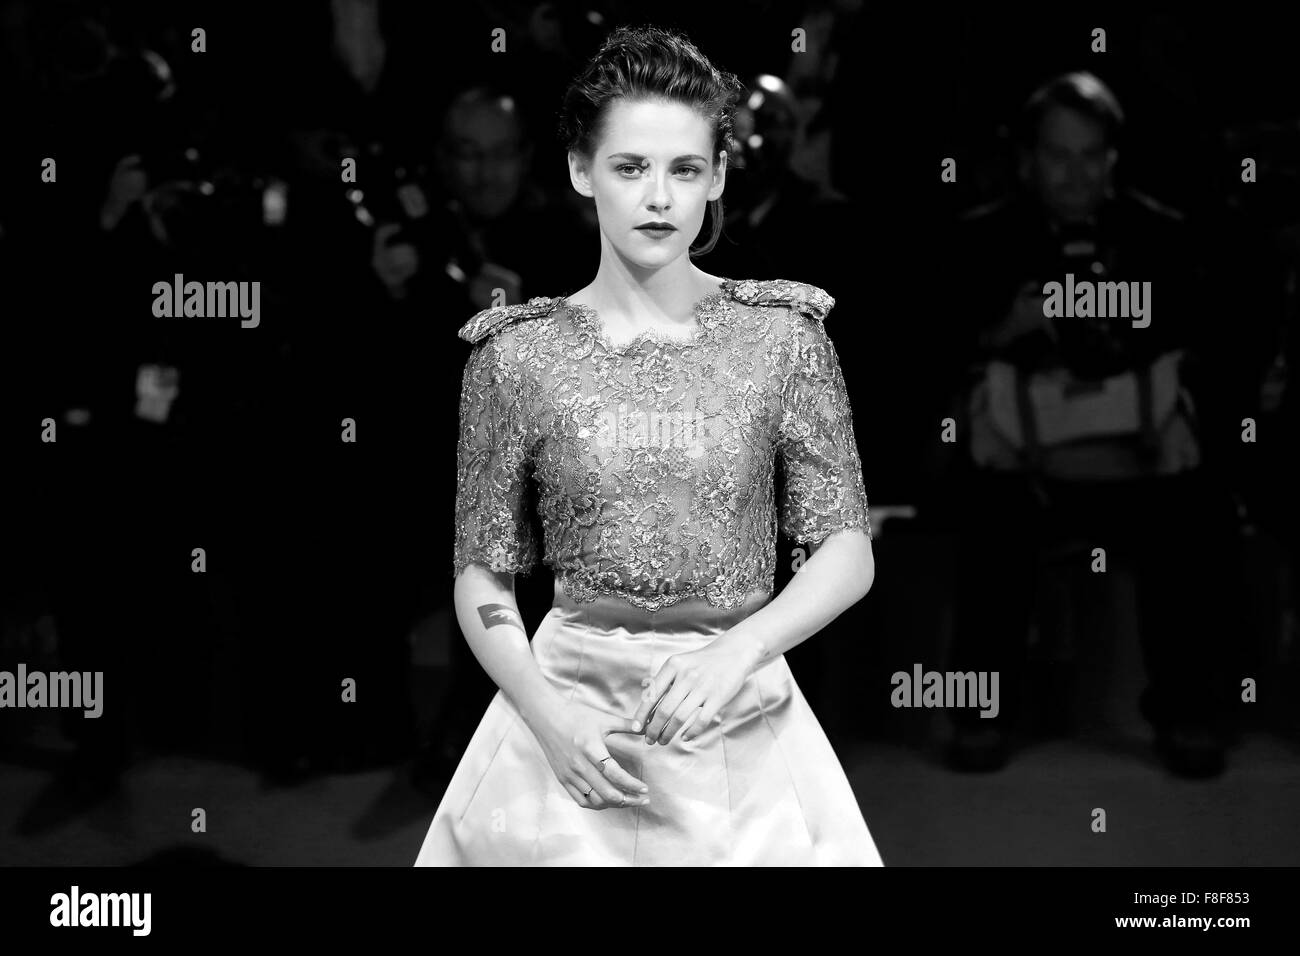 VENICE, ITALY - SEPTEMBER 5: Kristen Stewart attends the premiere of 'Equals' during the 72nd Venice Film Festival Stock Photo